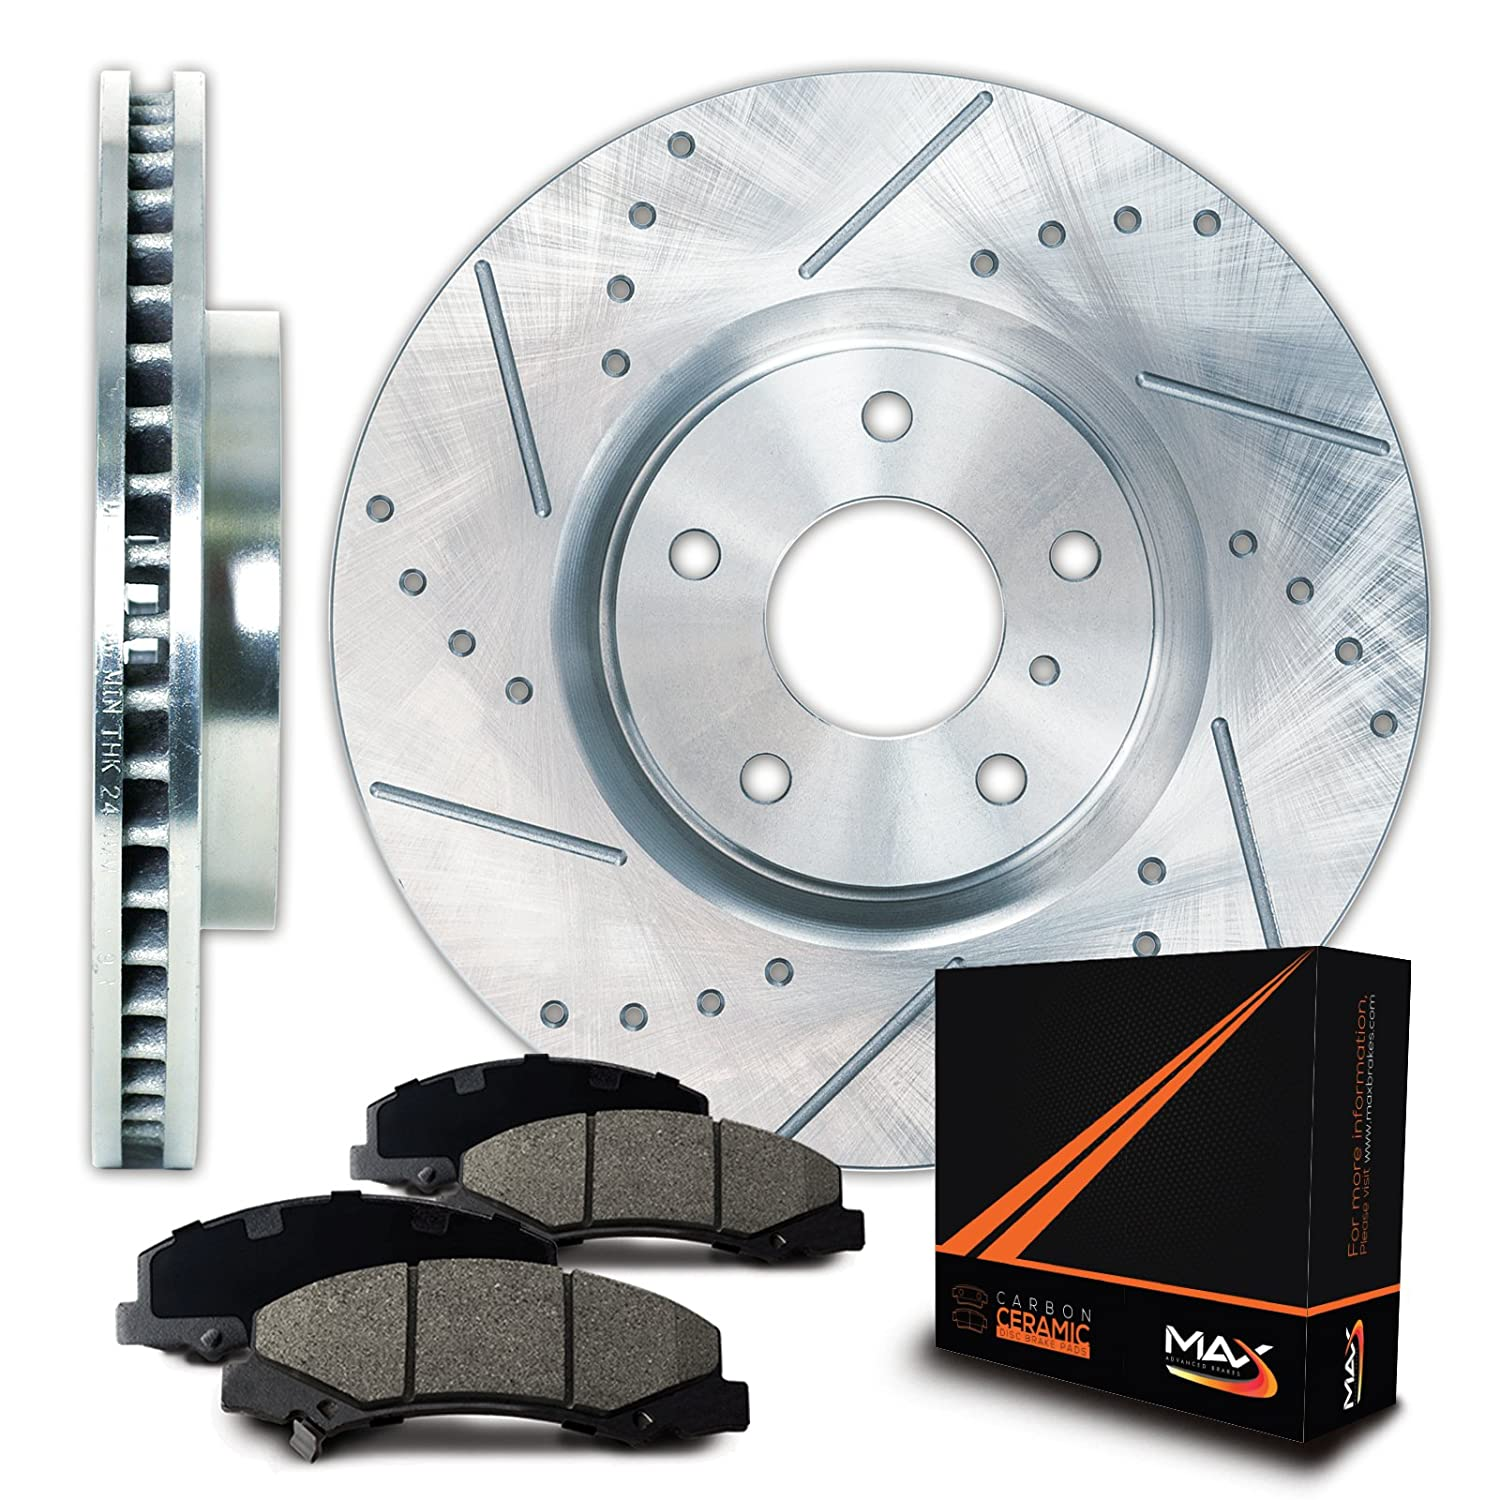 Max Brakes Zinc Coated Slotted Drilled Rotors W Ceramic 2000 Kia Sportage Rear Drum Brake Diagram Pads Front Perforamnce Kit Kt022911 Fits2003 2008 Tiburon 2005 2009